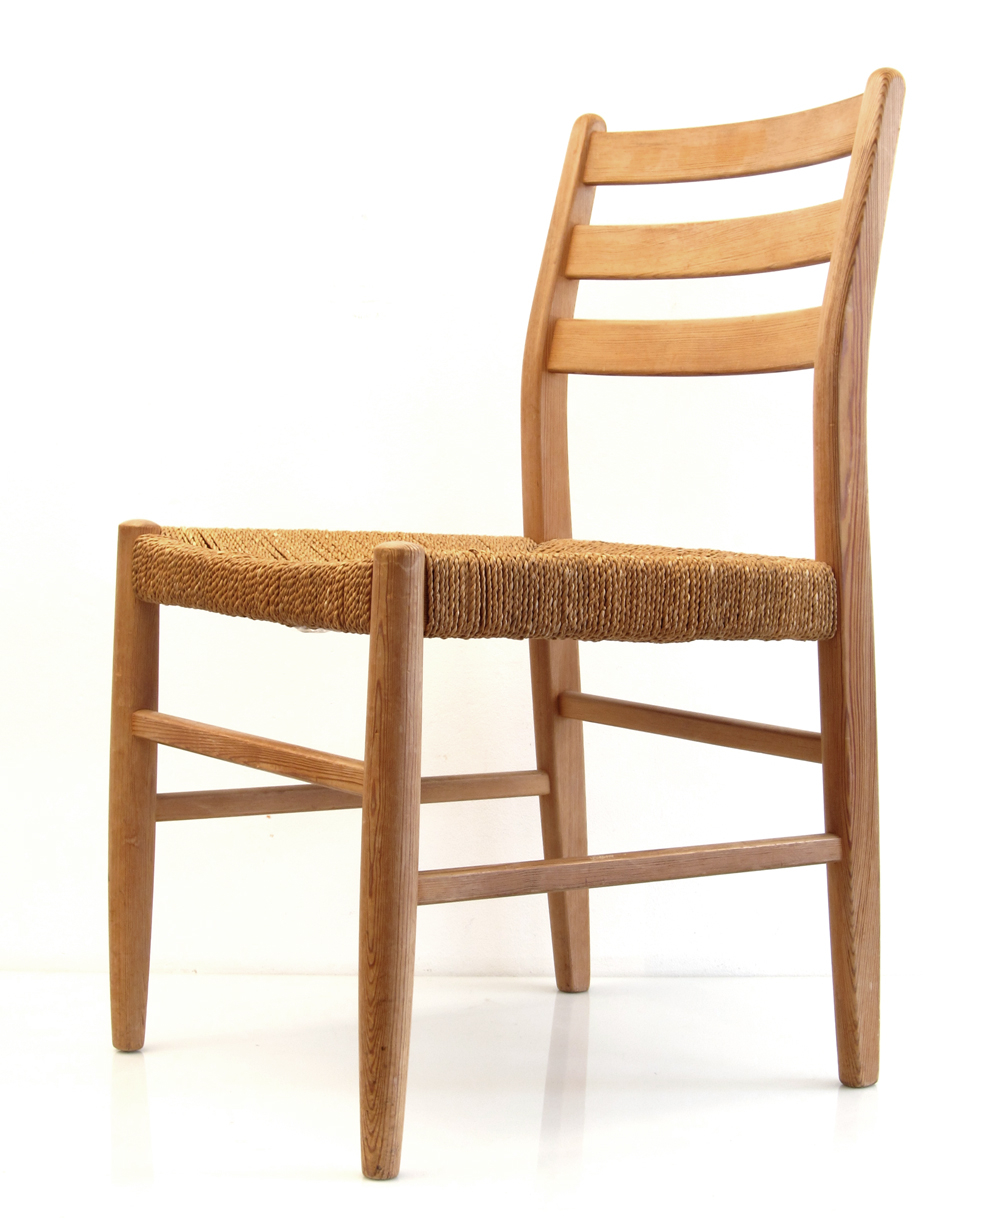 Scandinavian wooden retro chair for Scandinavian furniture